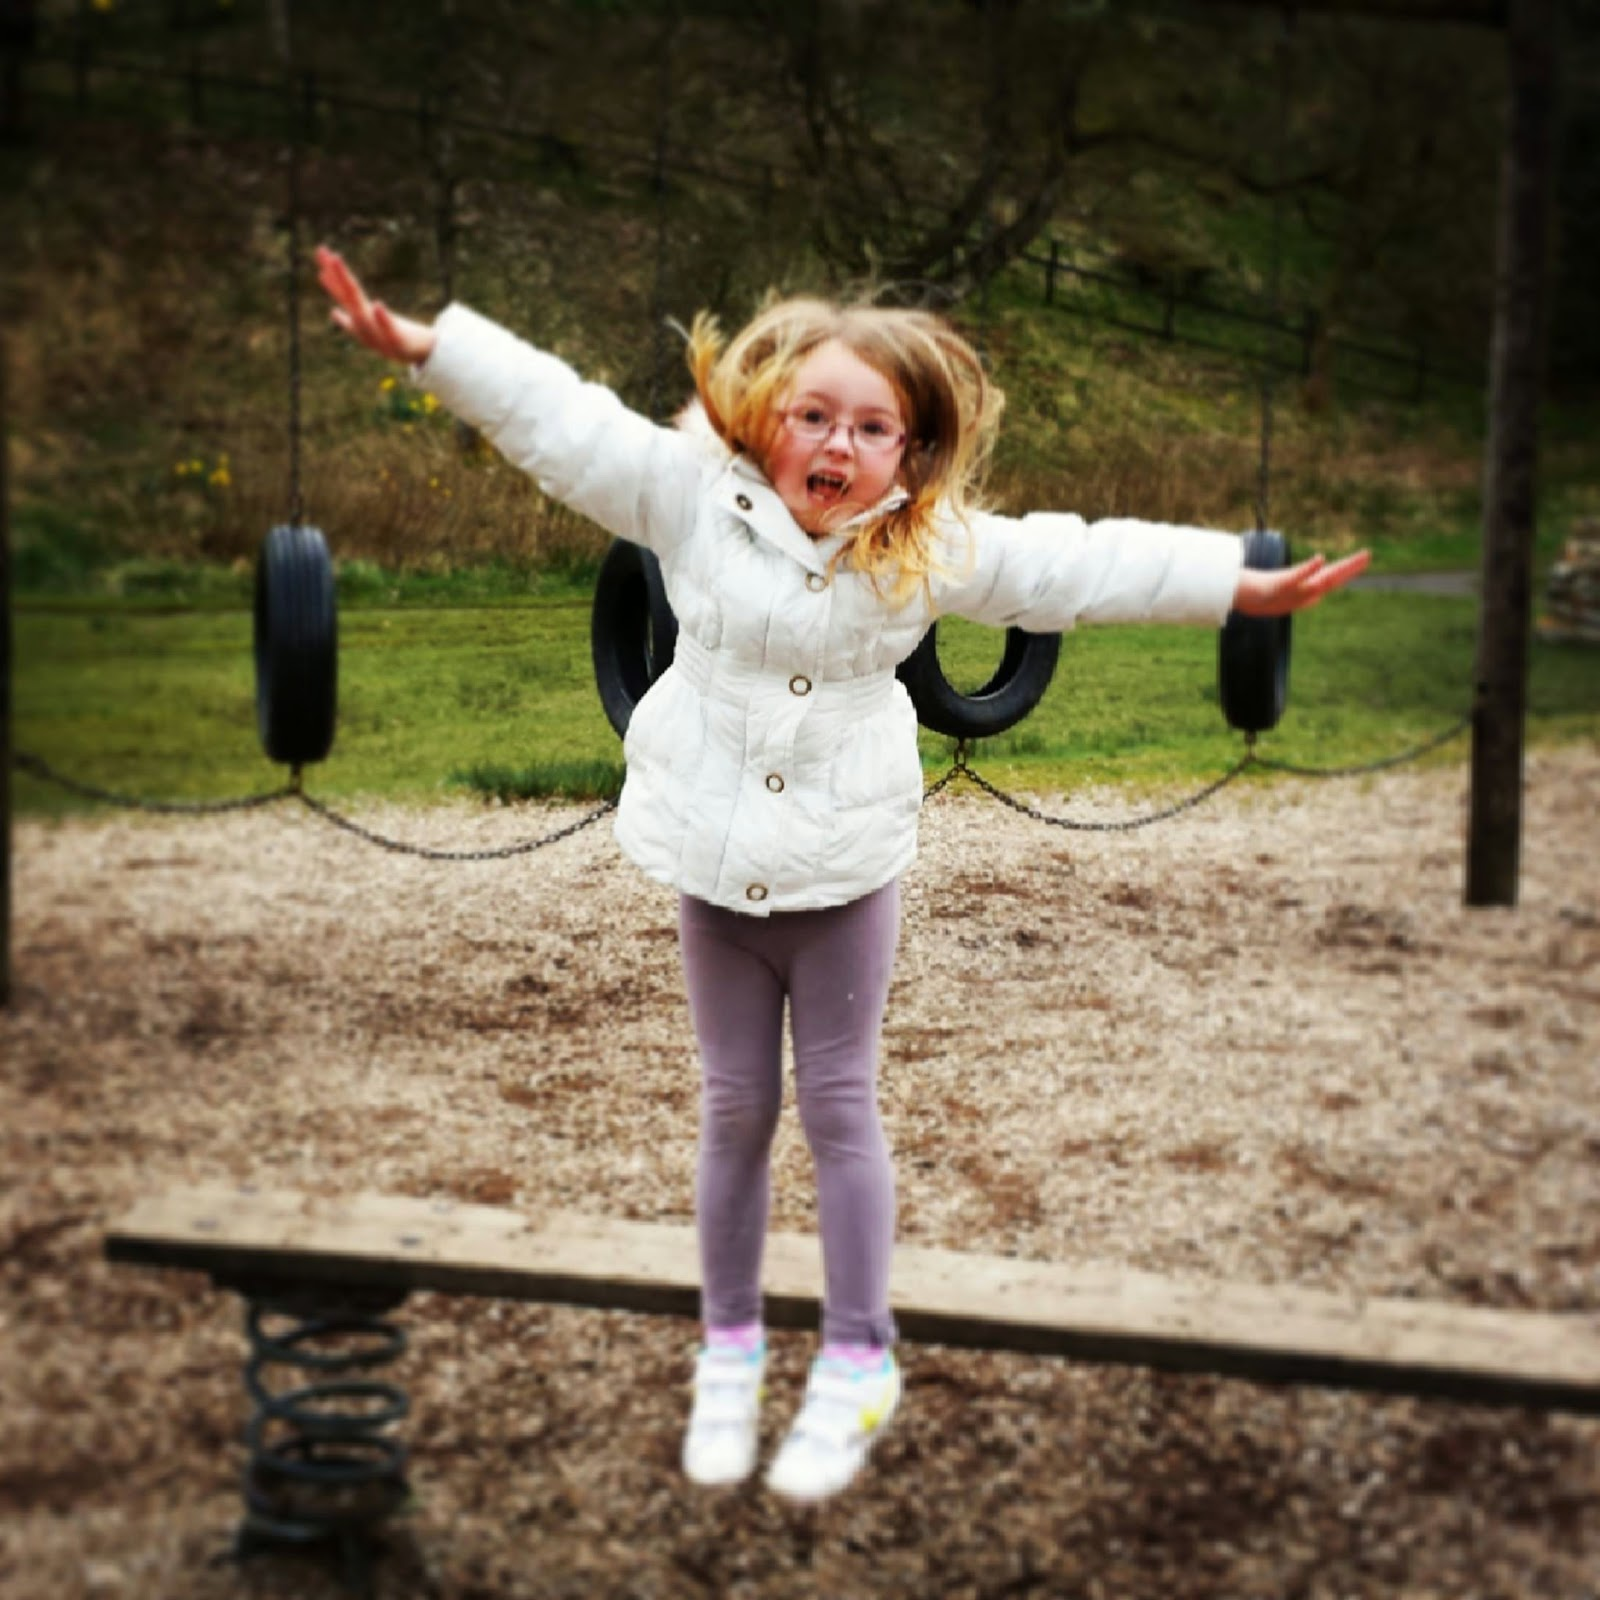 Fun at Kielder Park